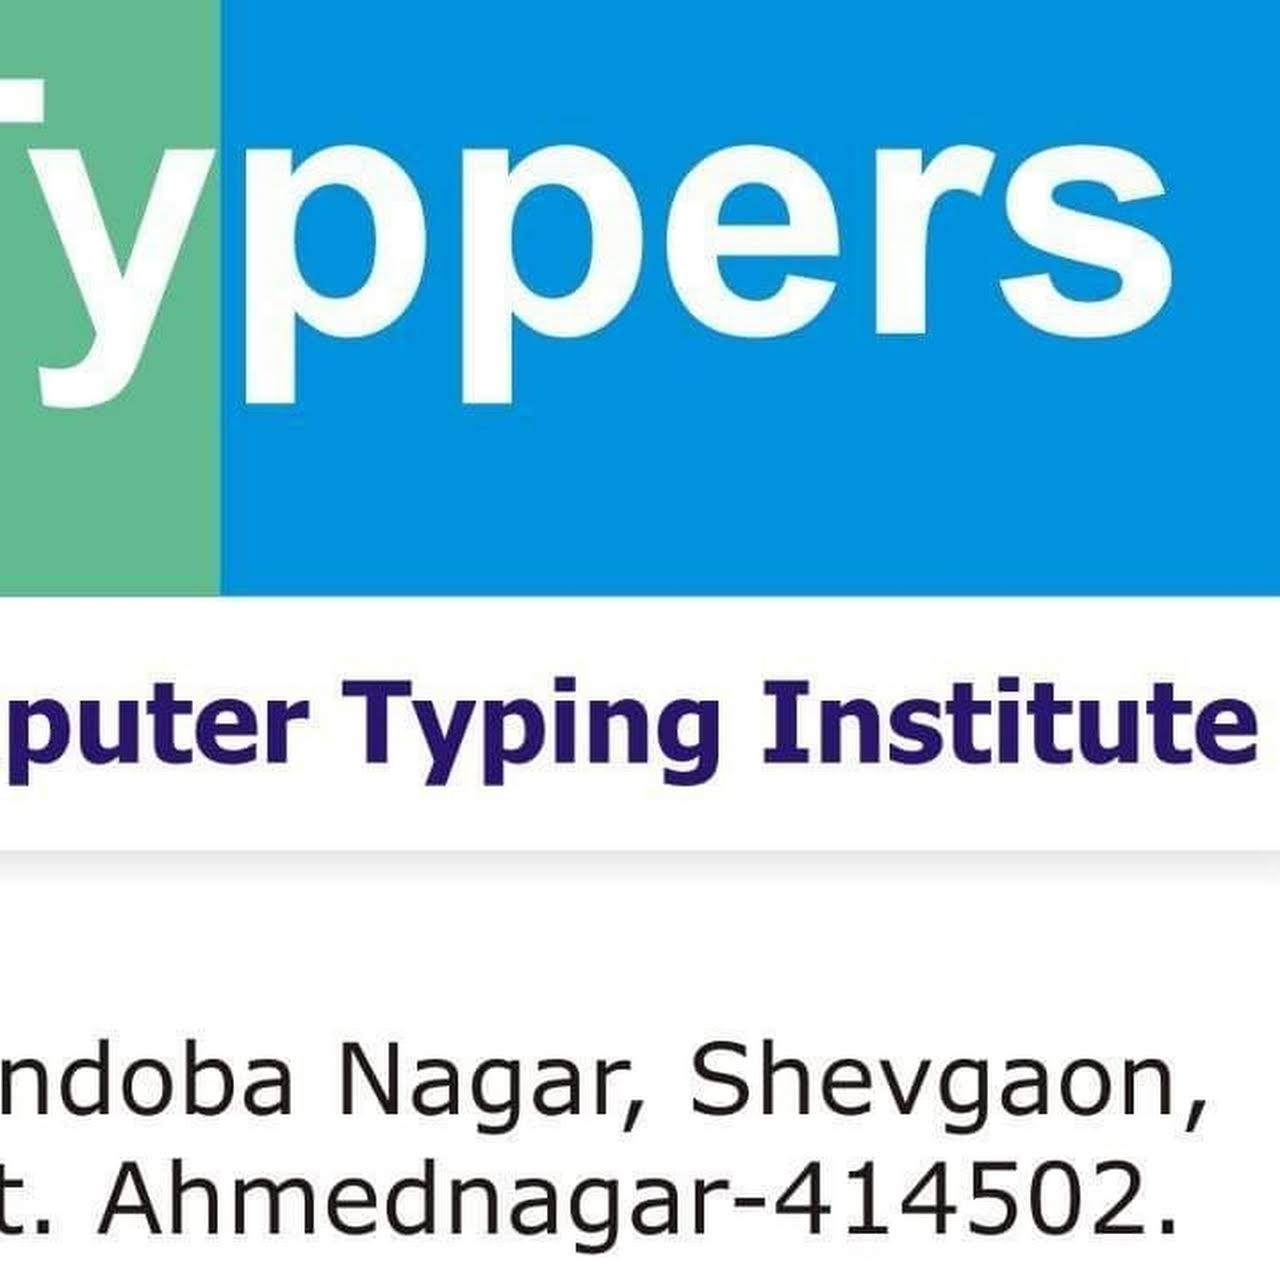 Typpers Computer Typing Institute